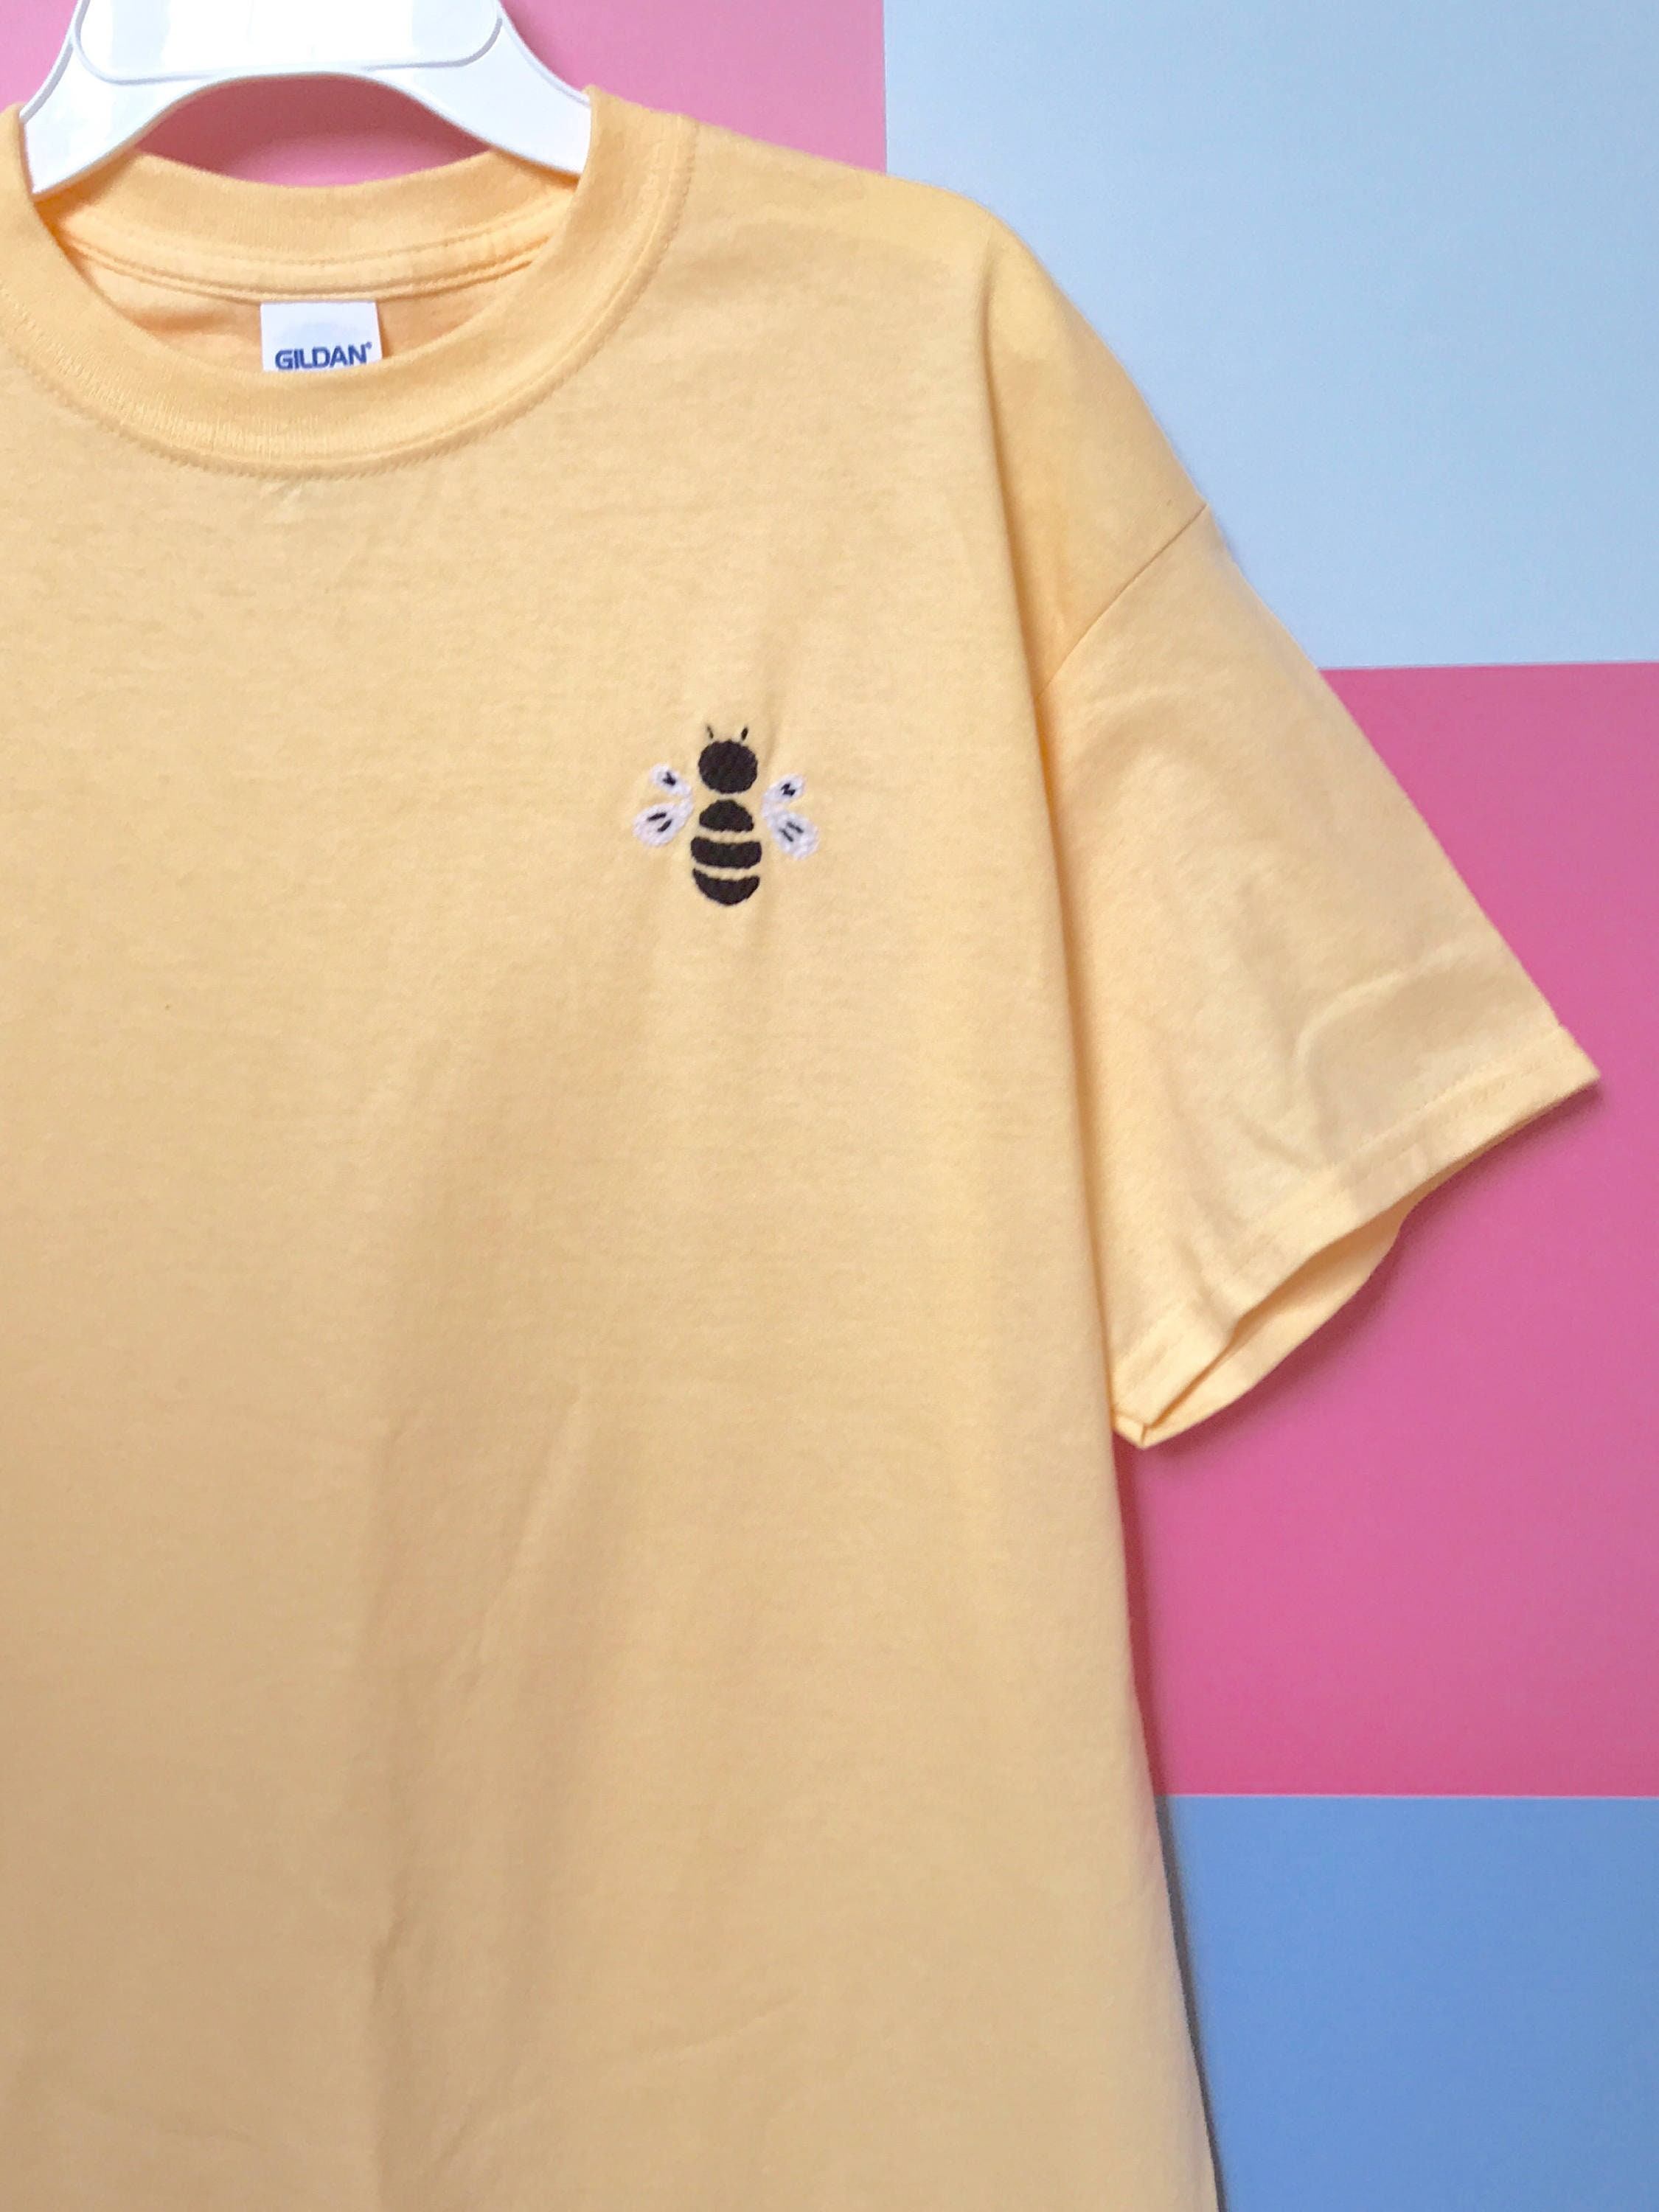 Embroidered Bee T Shirt Etsy